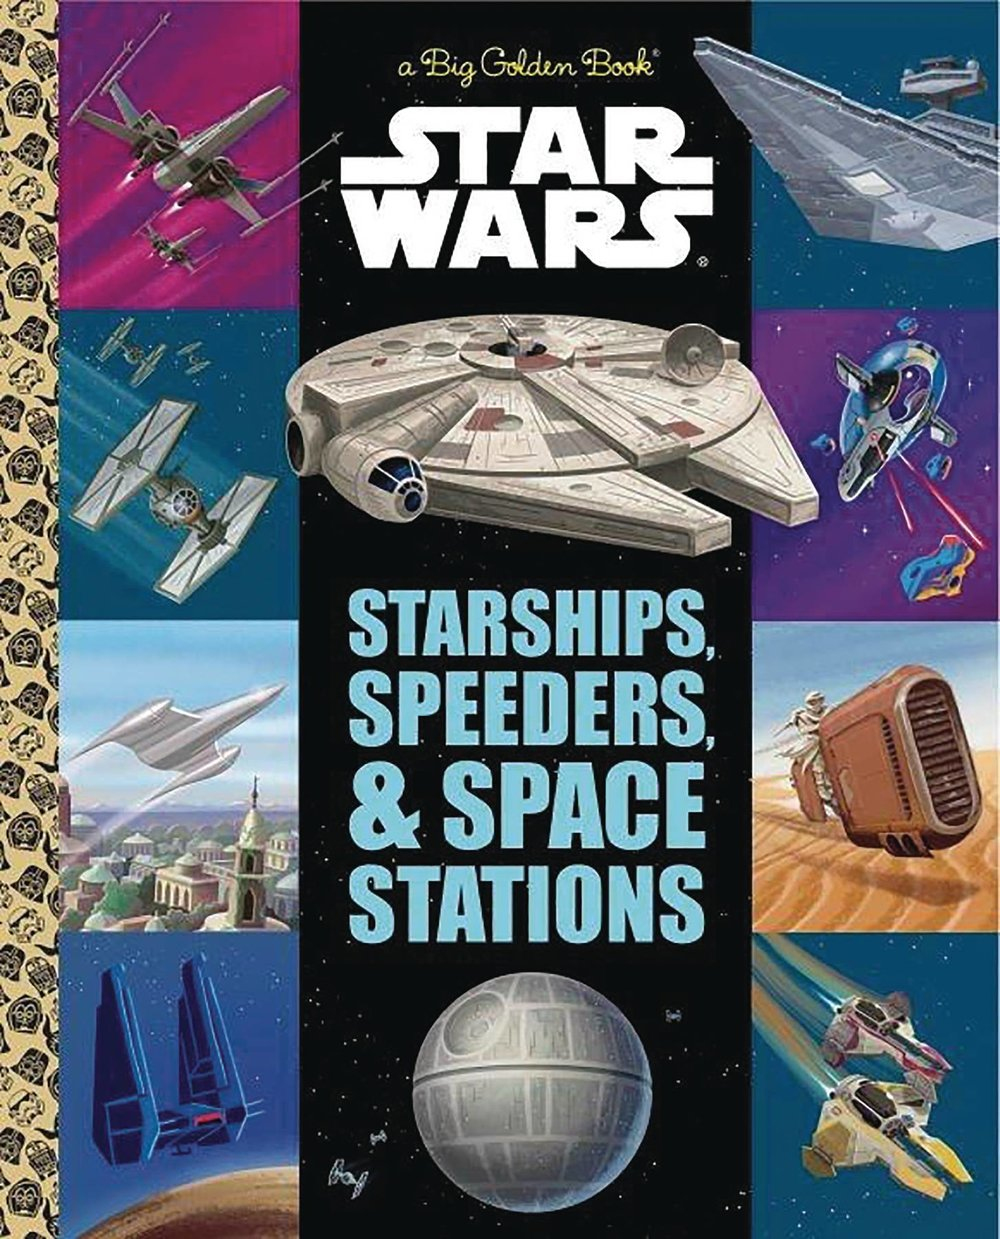 STAR WARS BIG GOLDEN BOOK STARSHIPS SPEEDERS SPACE STATIONS.jpg